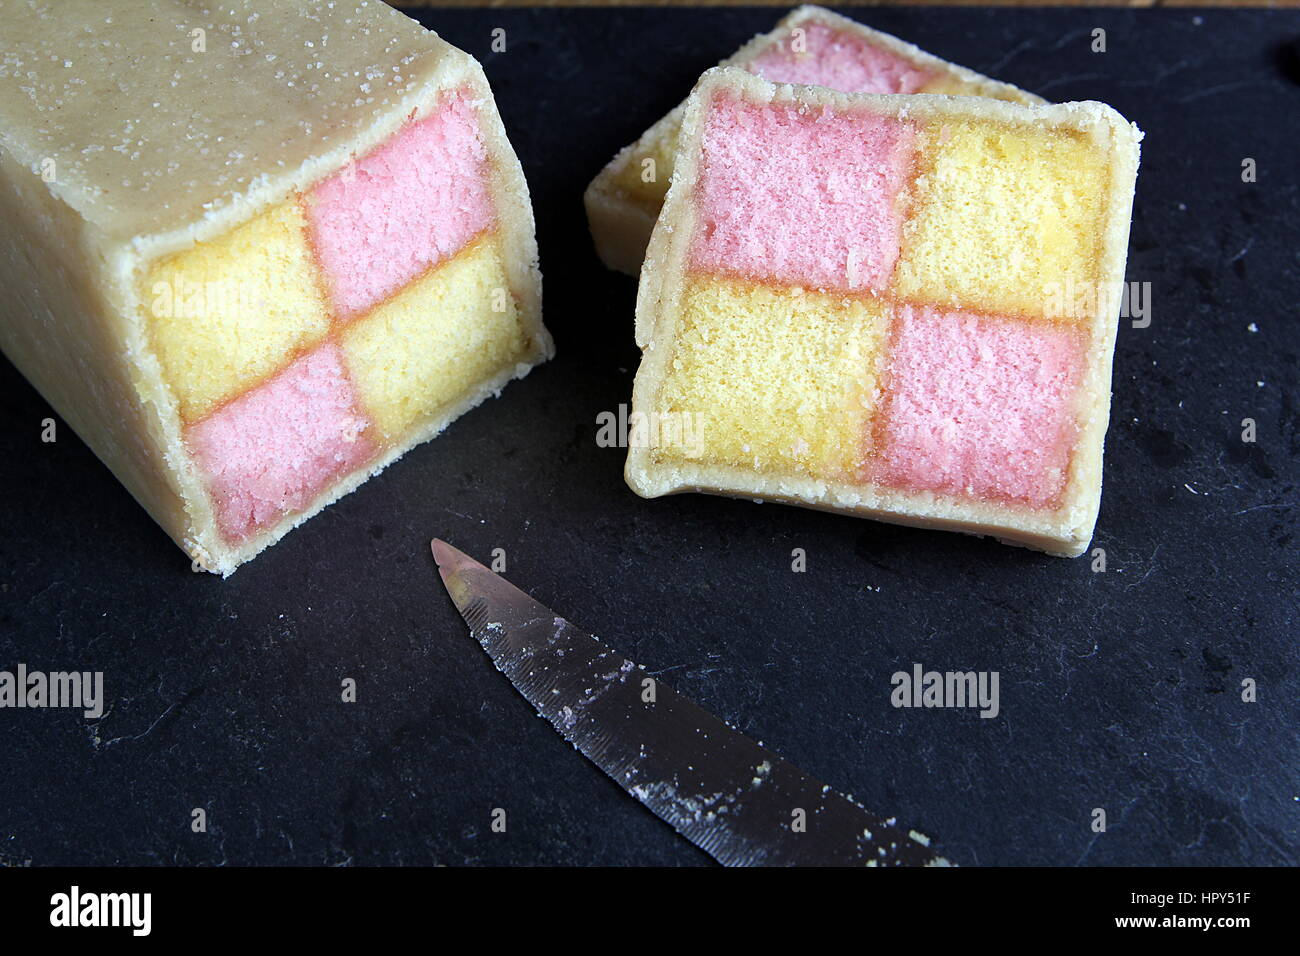 Freshly cut Battenberg Cake on dark slate background with knife. Pink and yellow sponge covered in marzipan - Stock Image